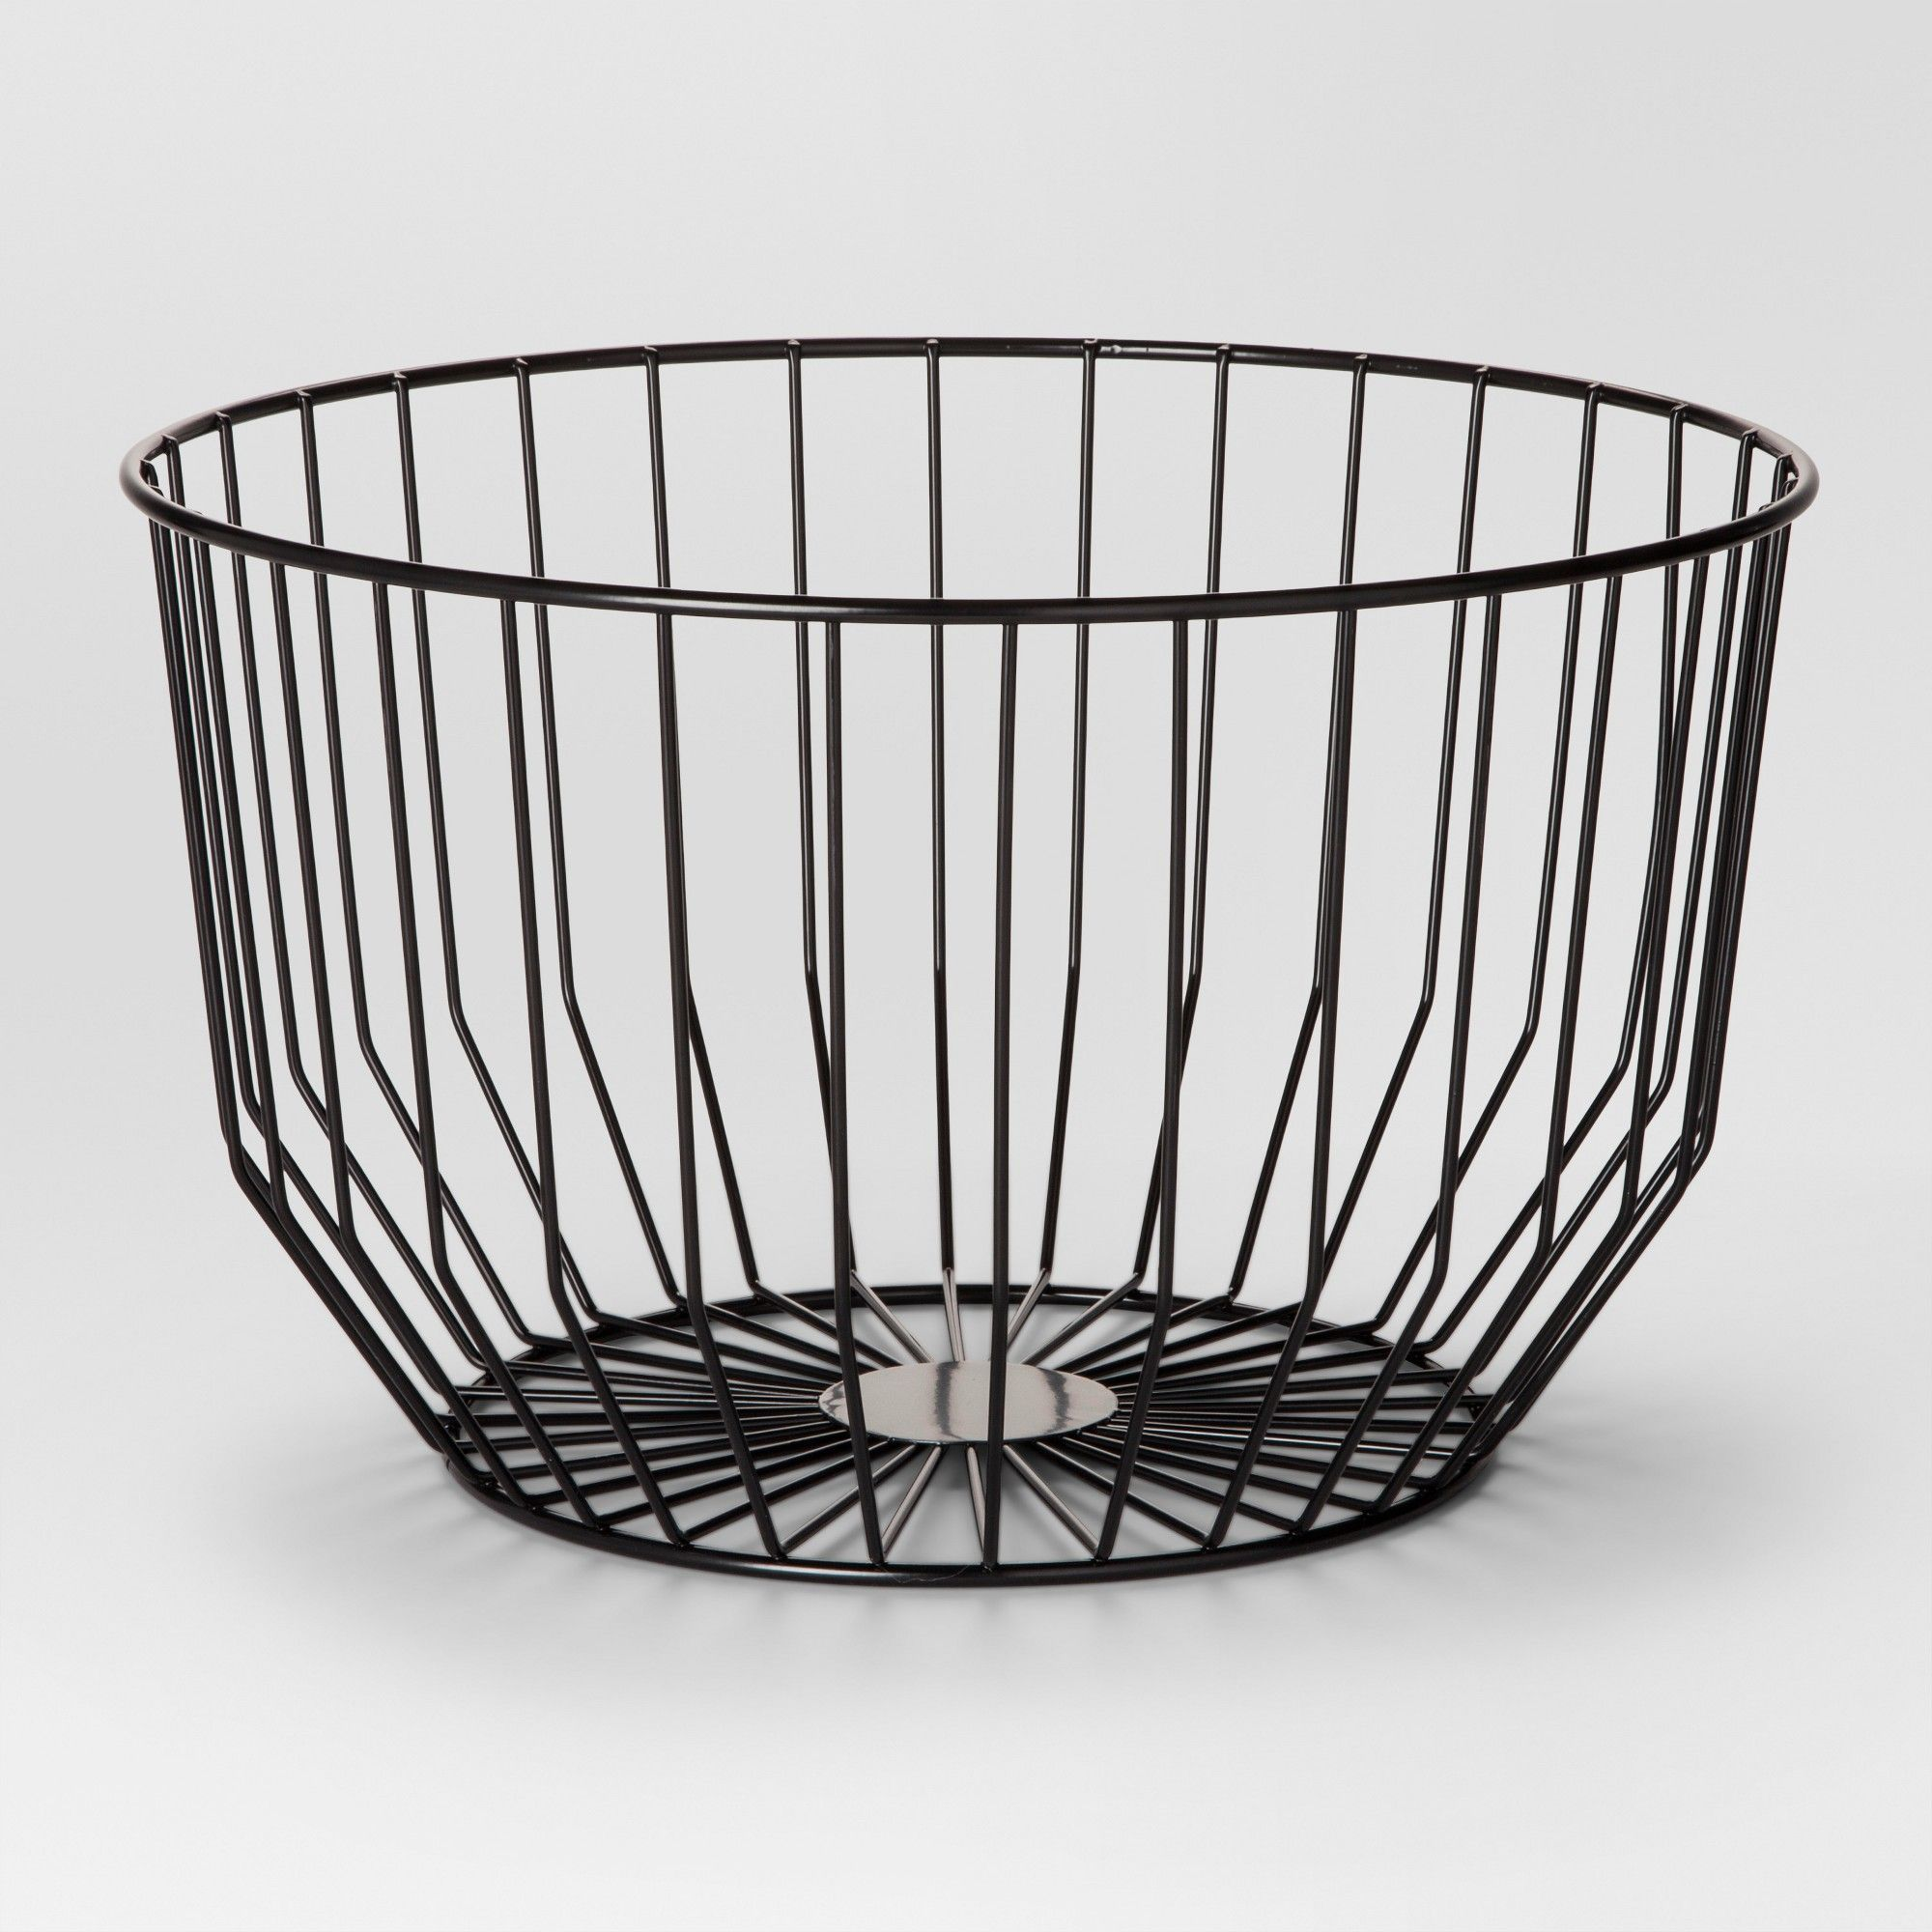 Round Wire Basket Small - Black - Project 62 | Products | Pinterest ...